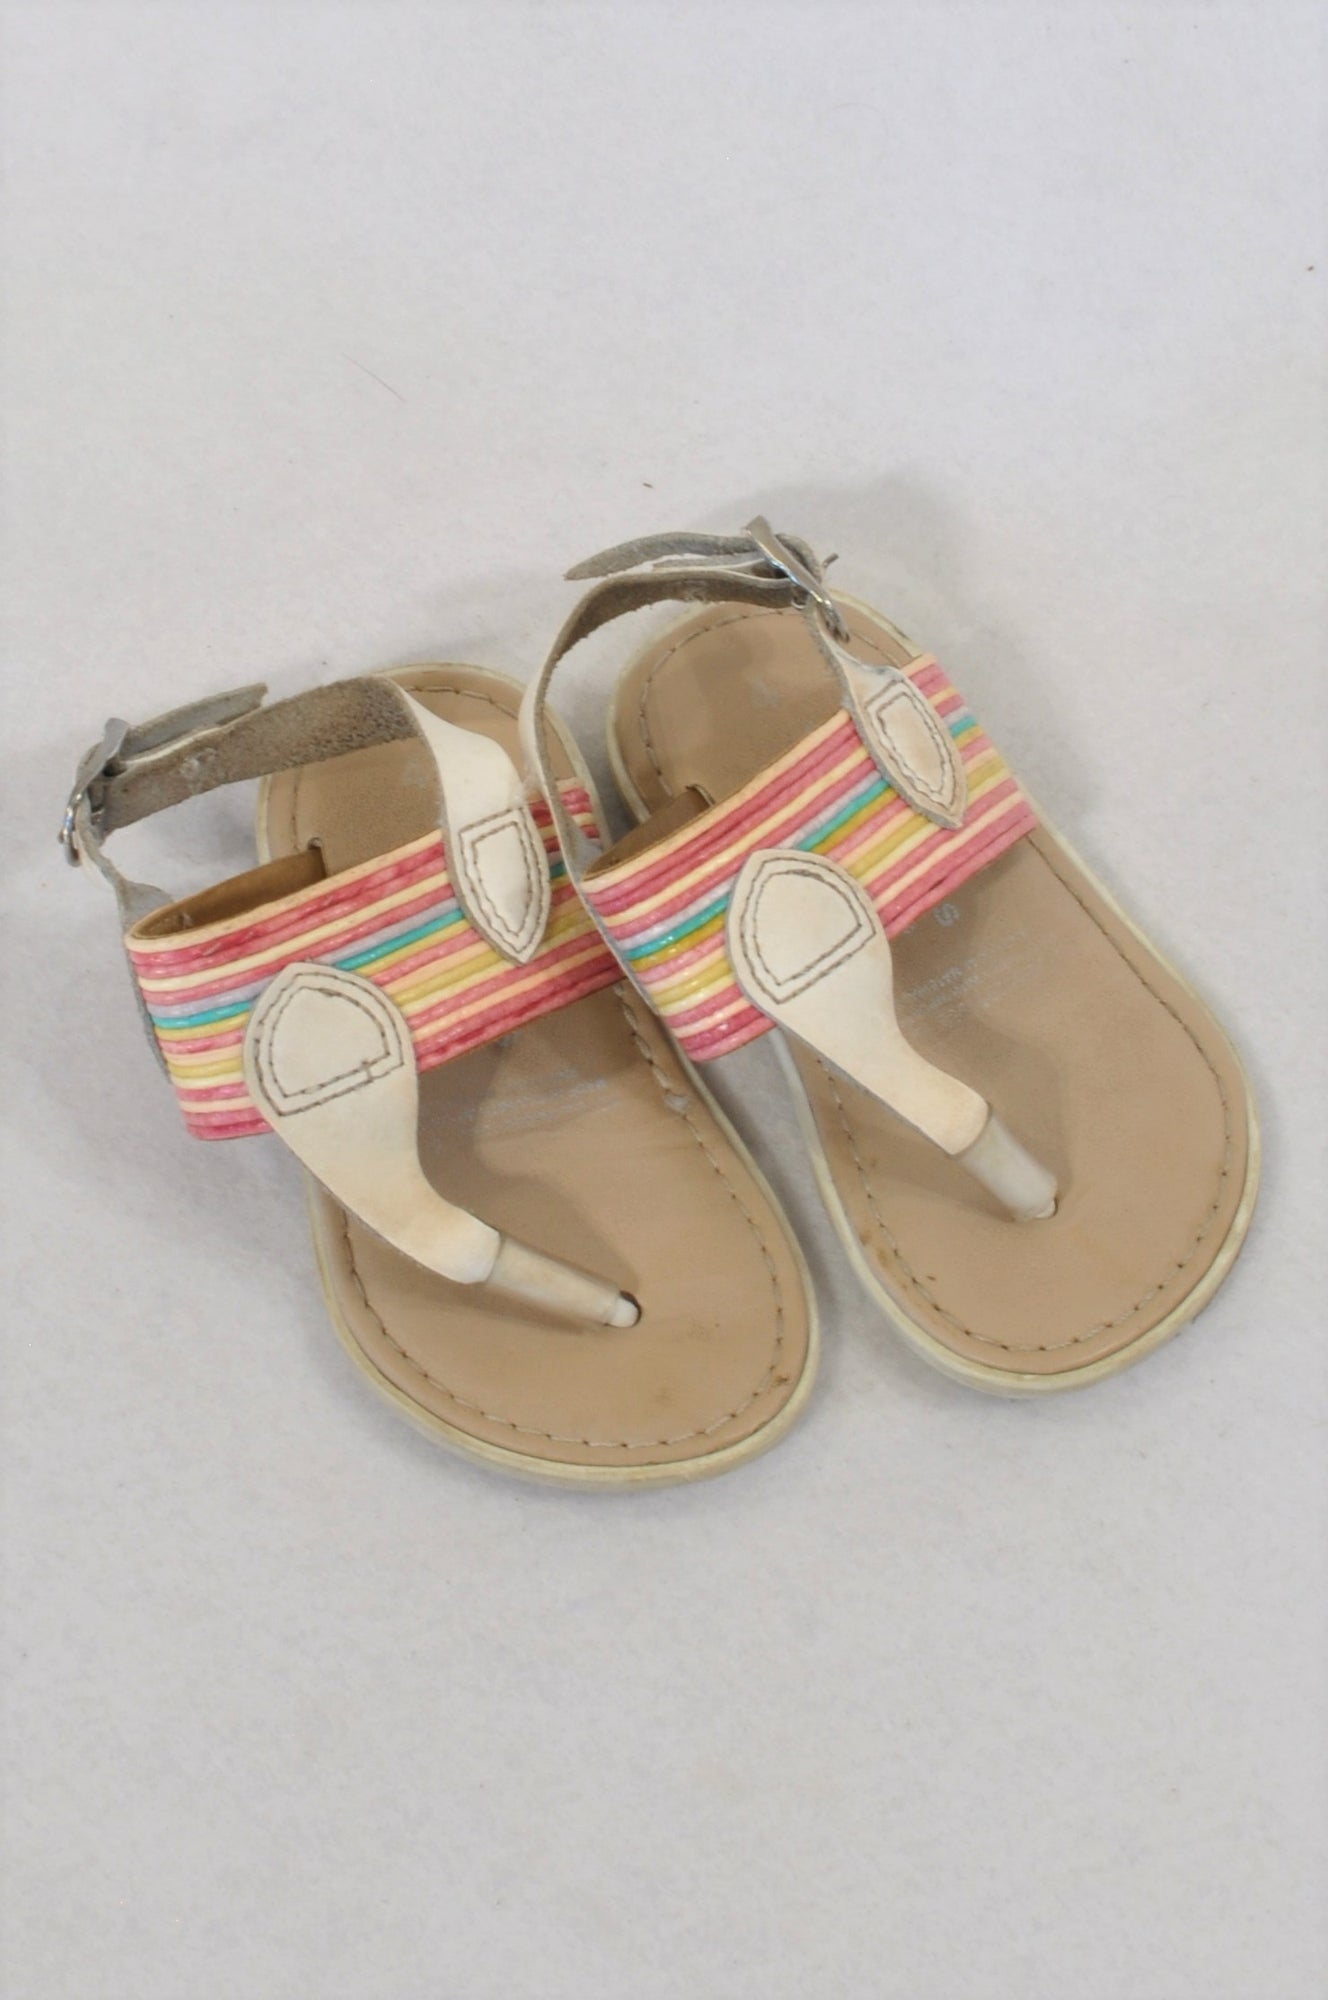 54621887a3d Woolworths Size 4 Rainbow Color Sandals Girls 12-18 months